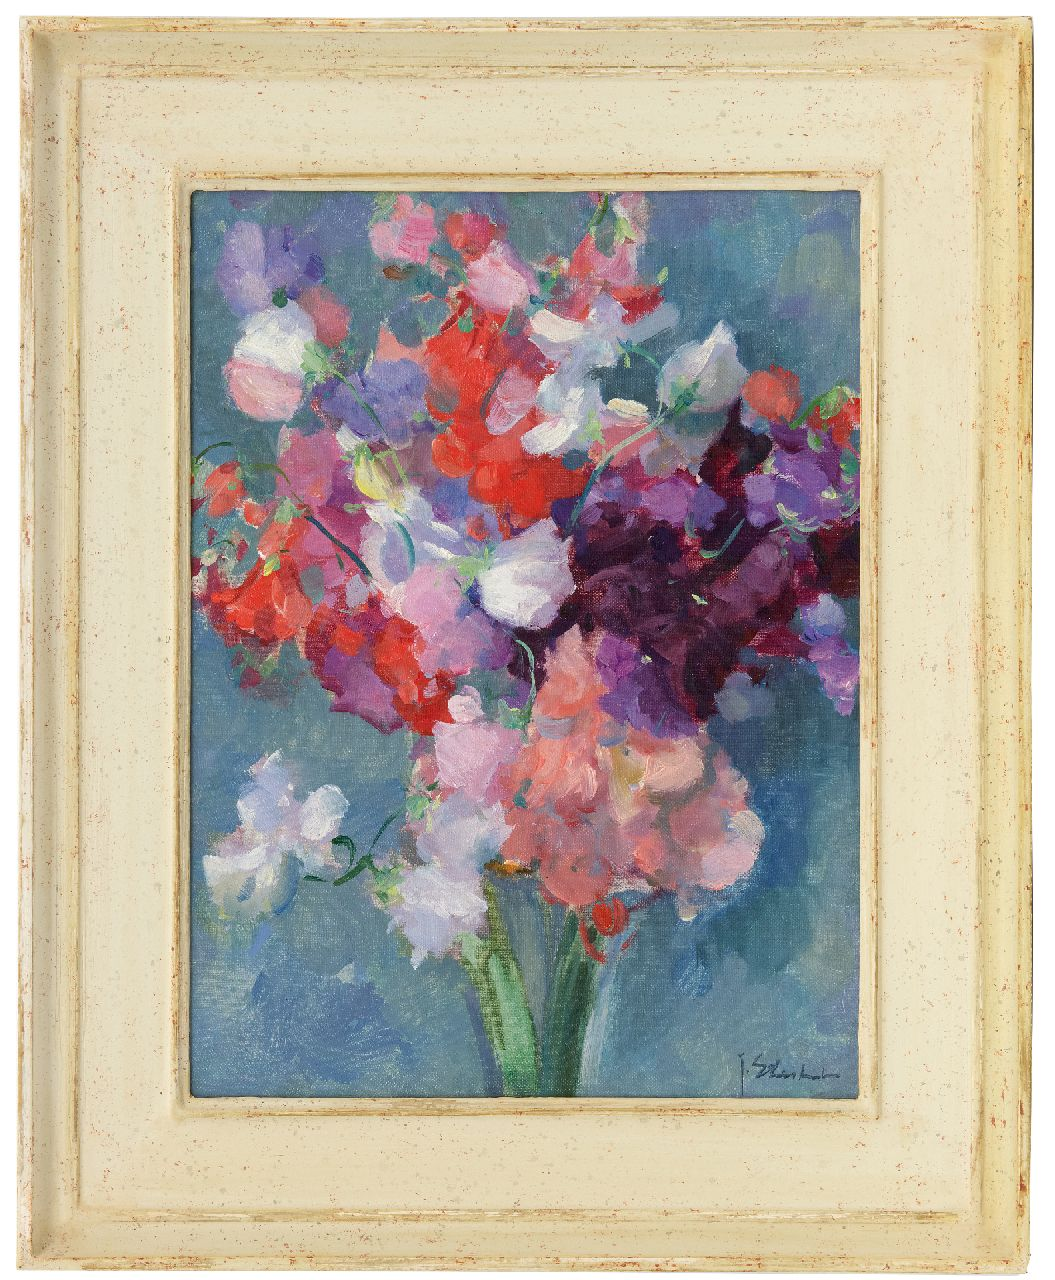 Stierhout J.A.U.  | Josephus Antonius Ubaldus 'Joop' Stierhout | Paintings offered for sale | Sweet pea, oil on canvas 40.4 x 30.1 cm, signed l.r.